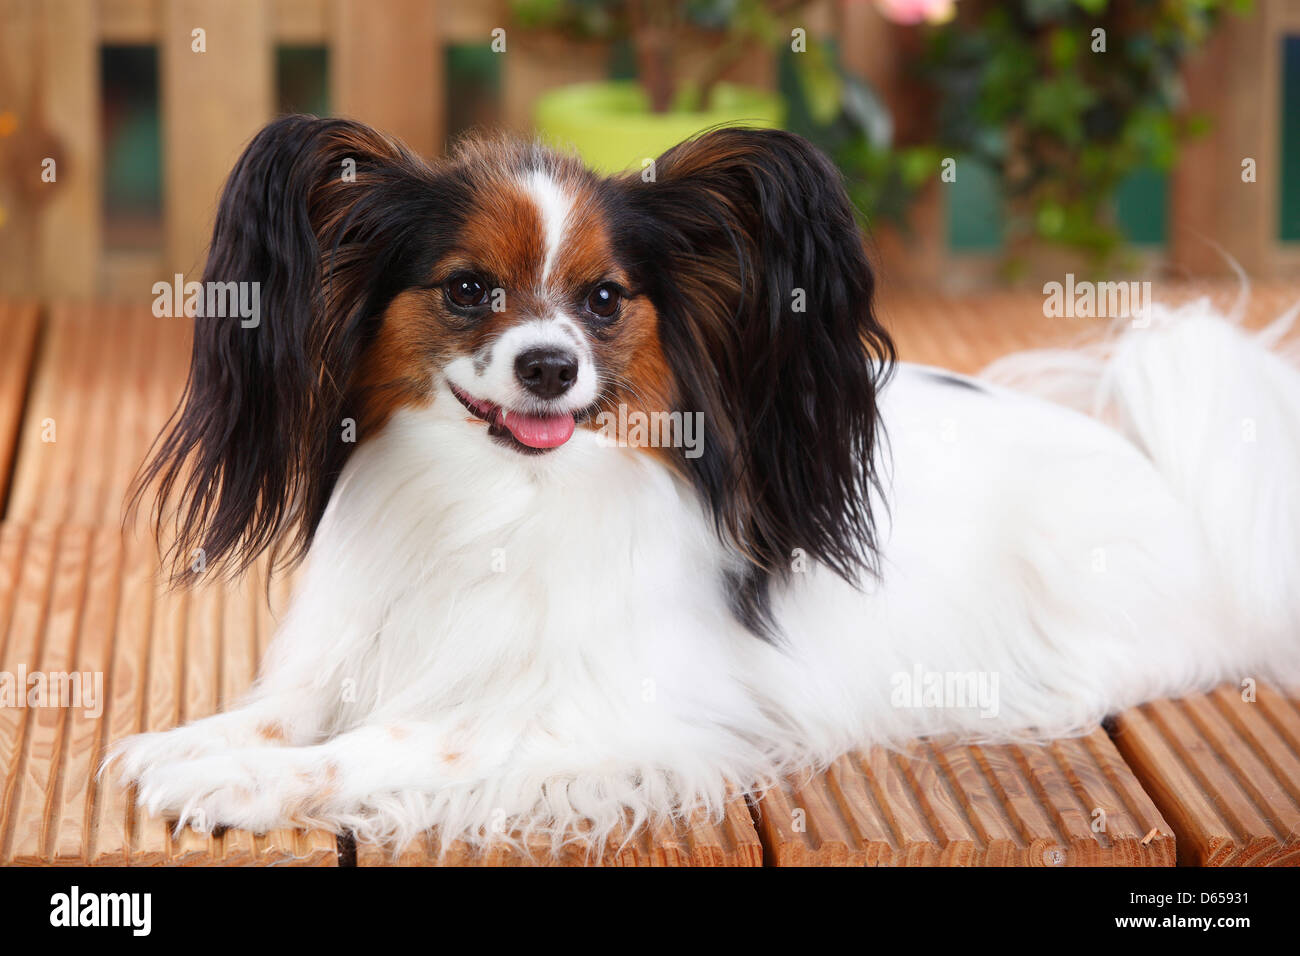 Papillon / Continental Toy Spaniel, Butterfly Dog - Stock Image